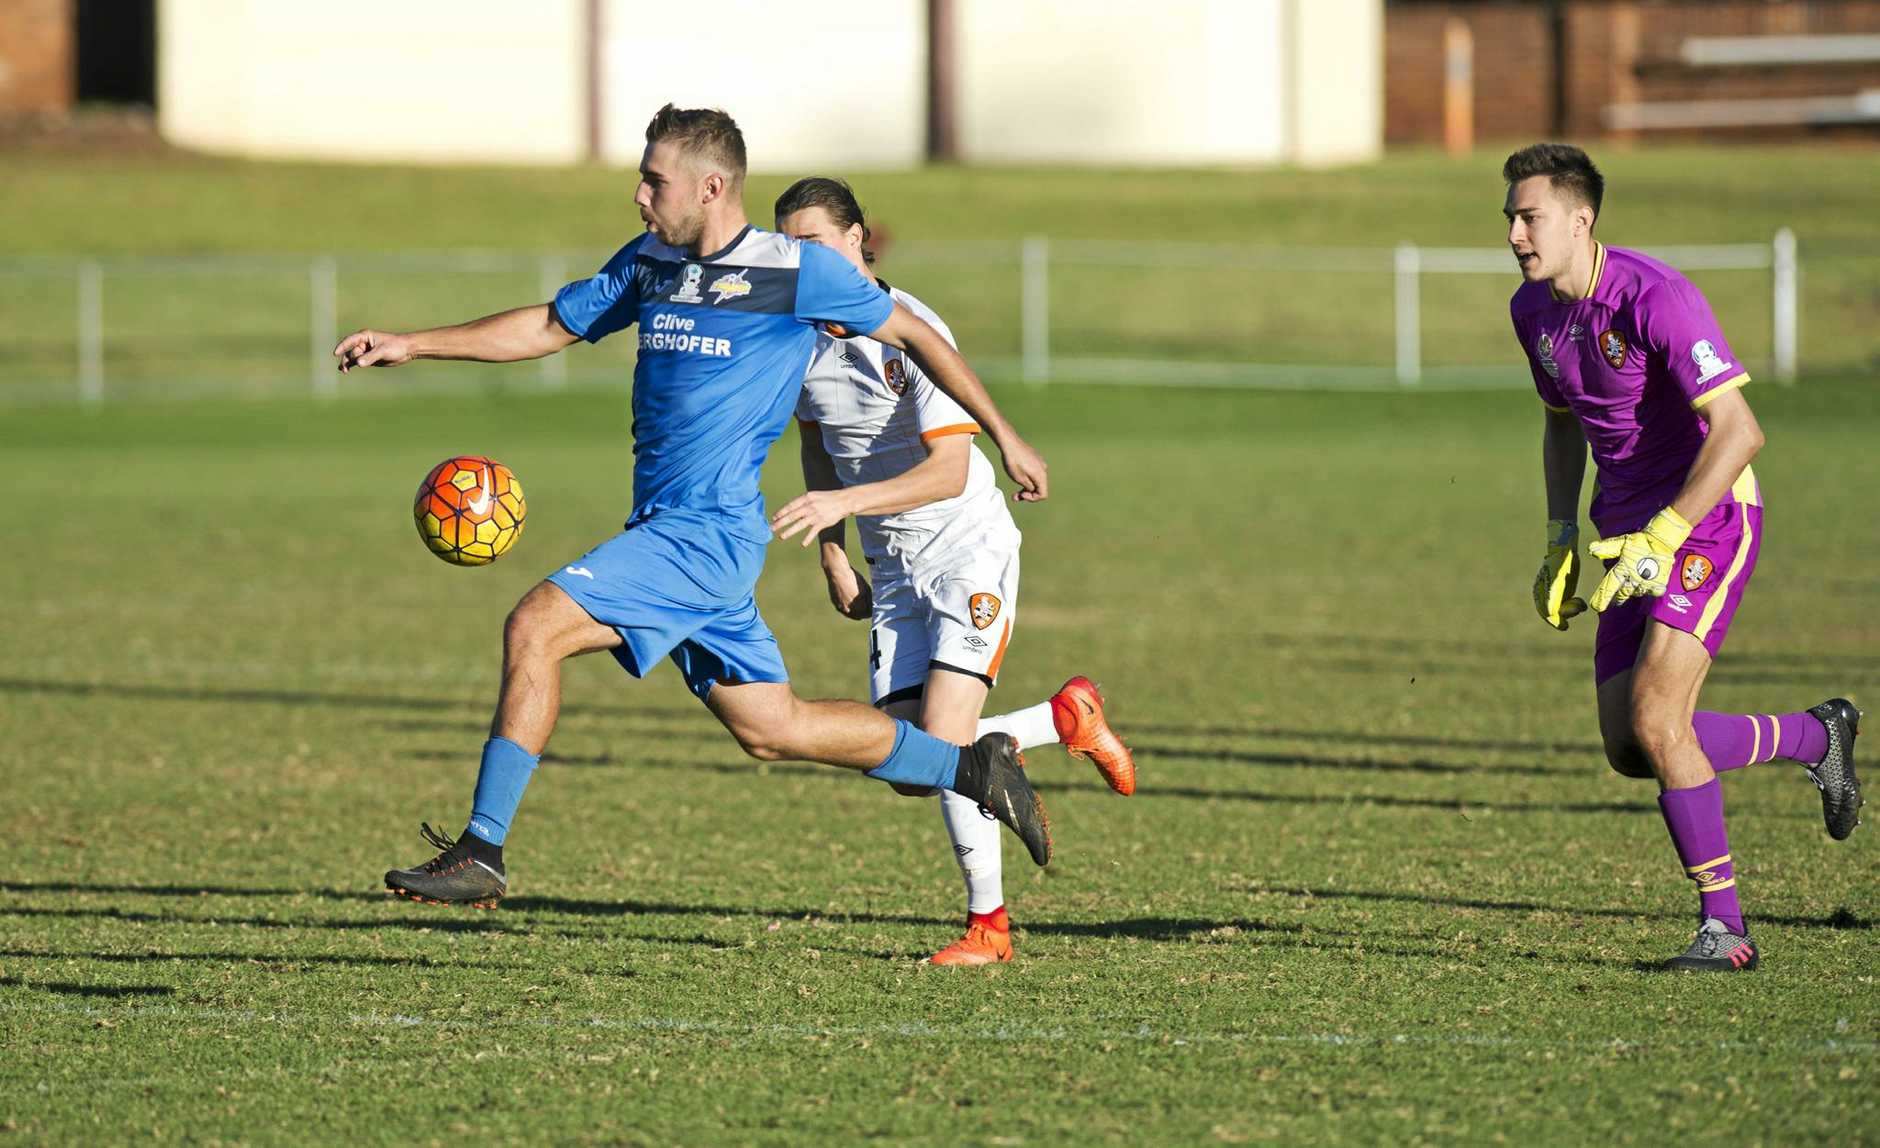 GOAL SCORER: Anthony Grant runs to an unmanned goal to score for the South-West Thunder against the Brisbane Roar Youth team at Clive Berghofer Stadium.